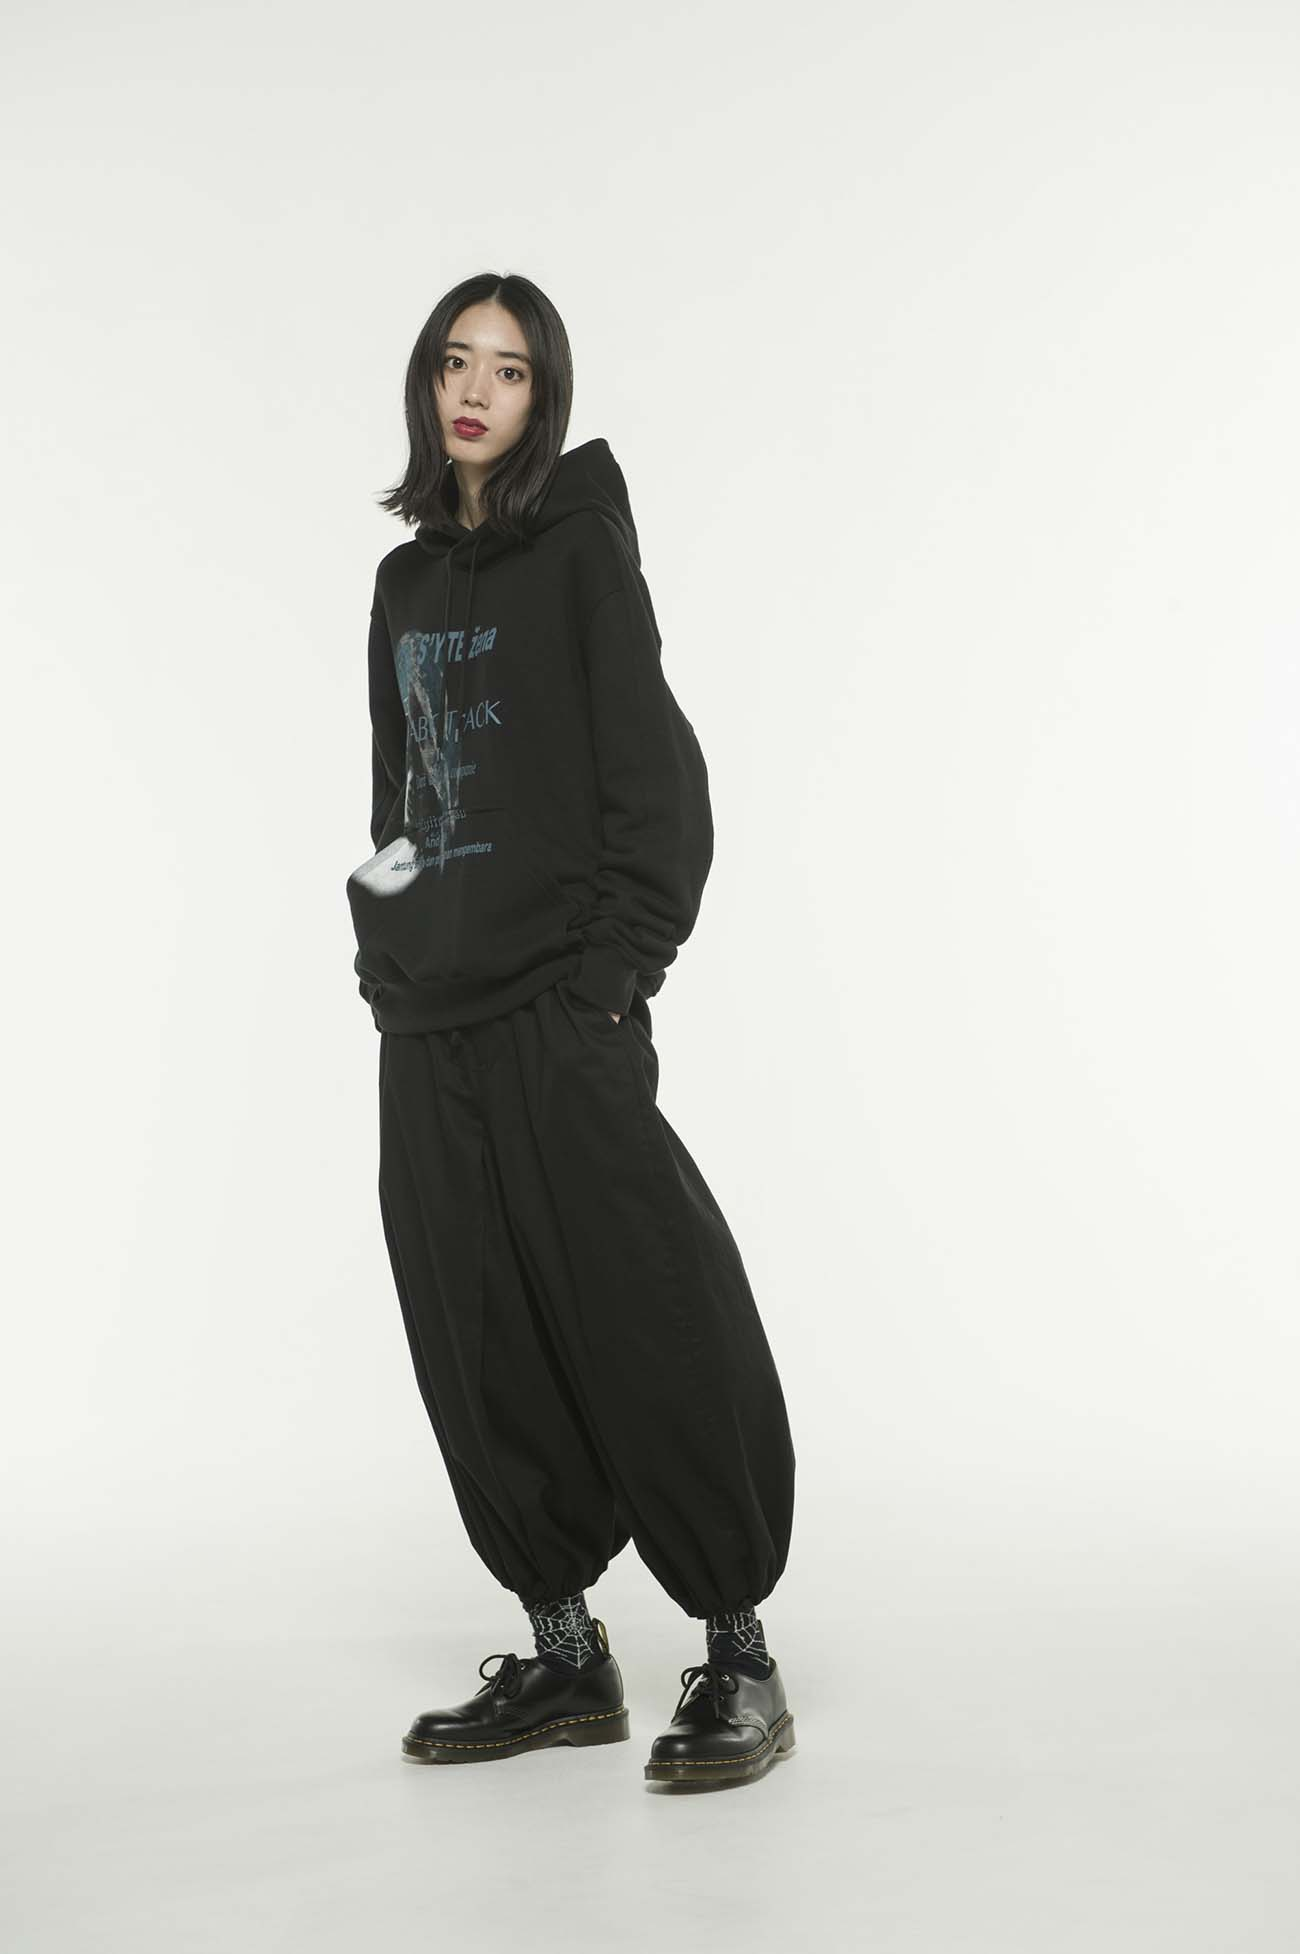 French Terry Stitch Work S'YTE Zena Romany Hoodie